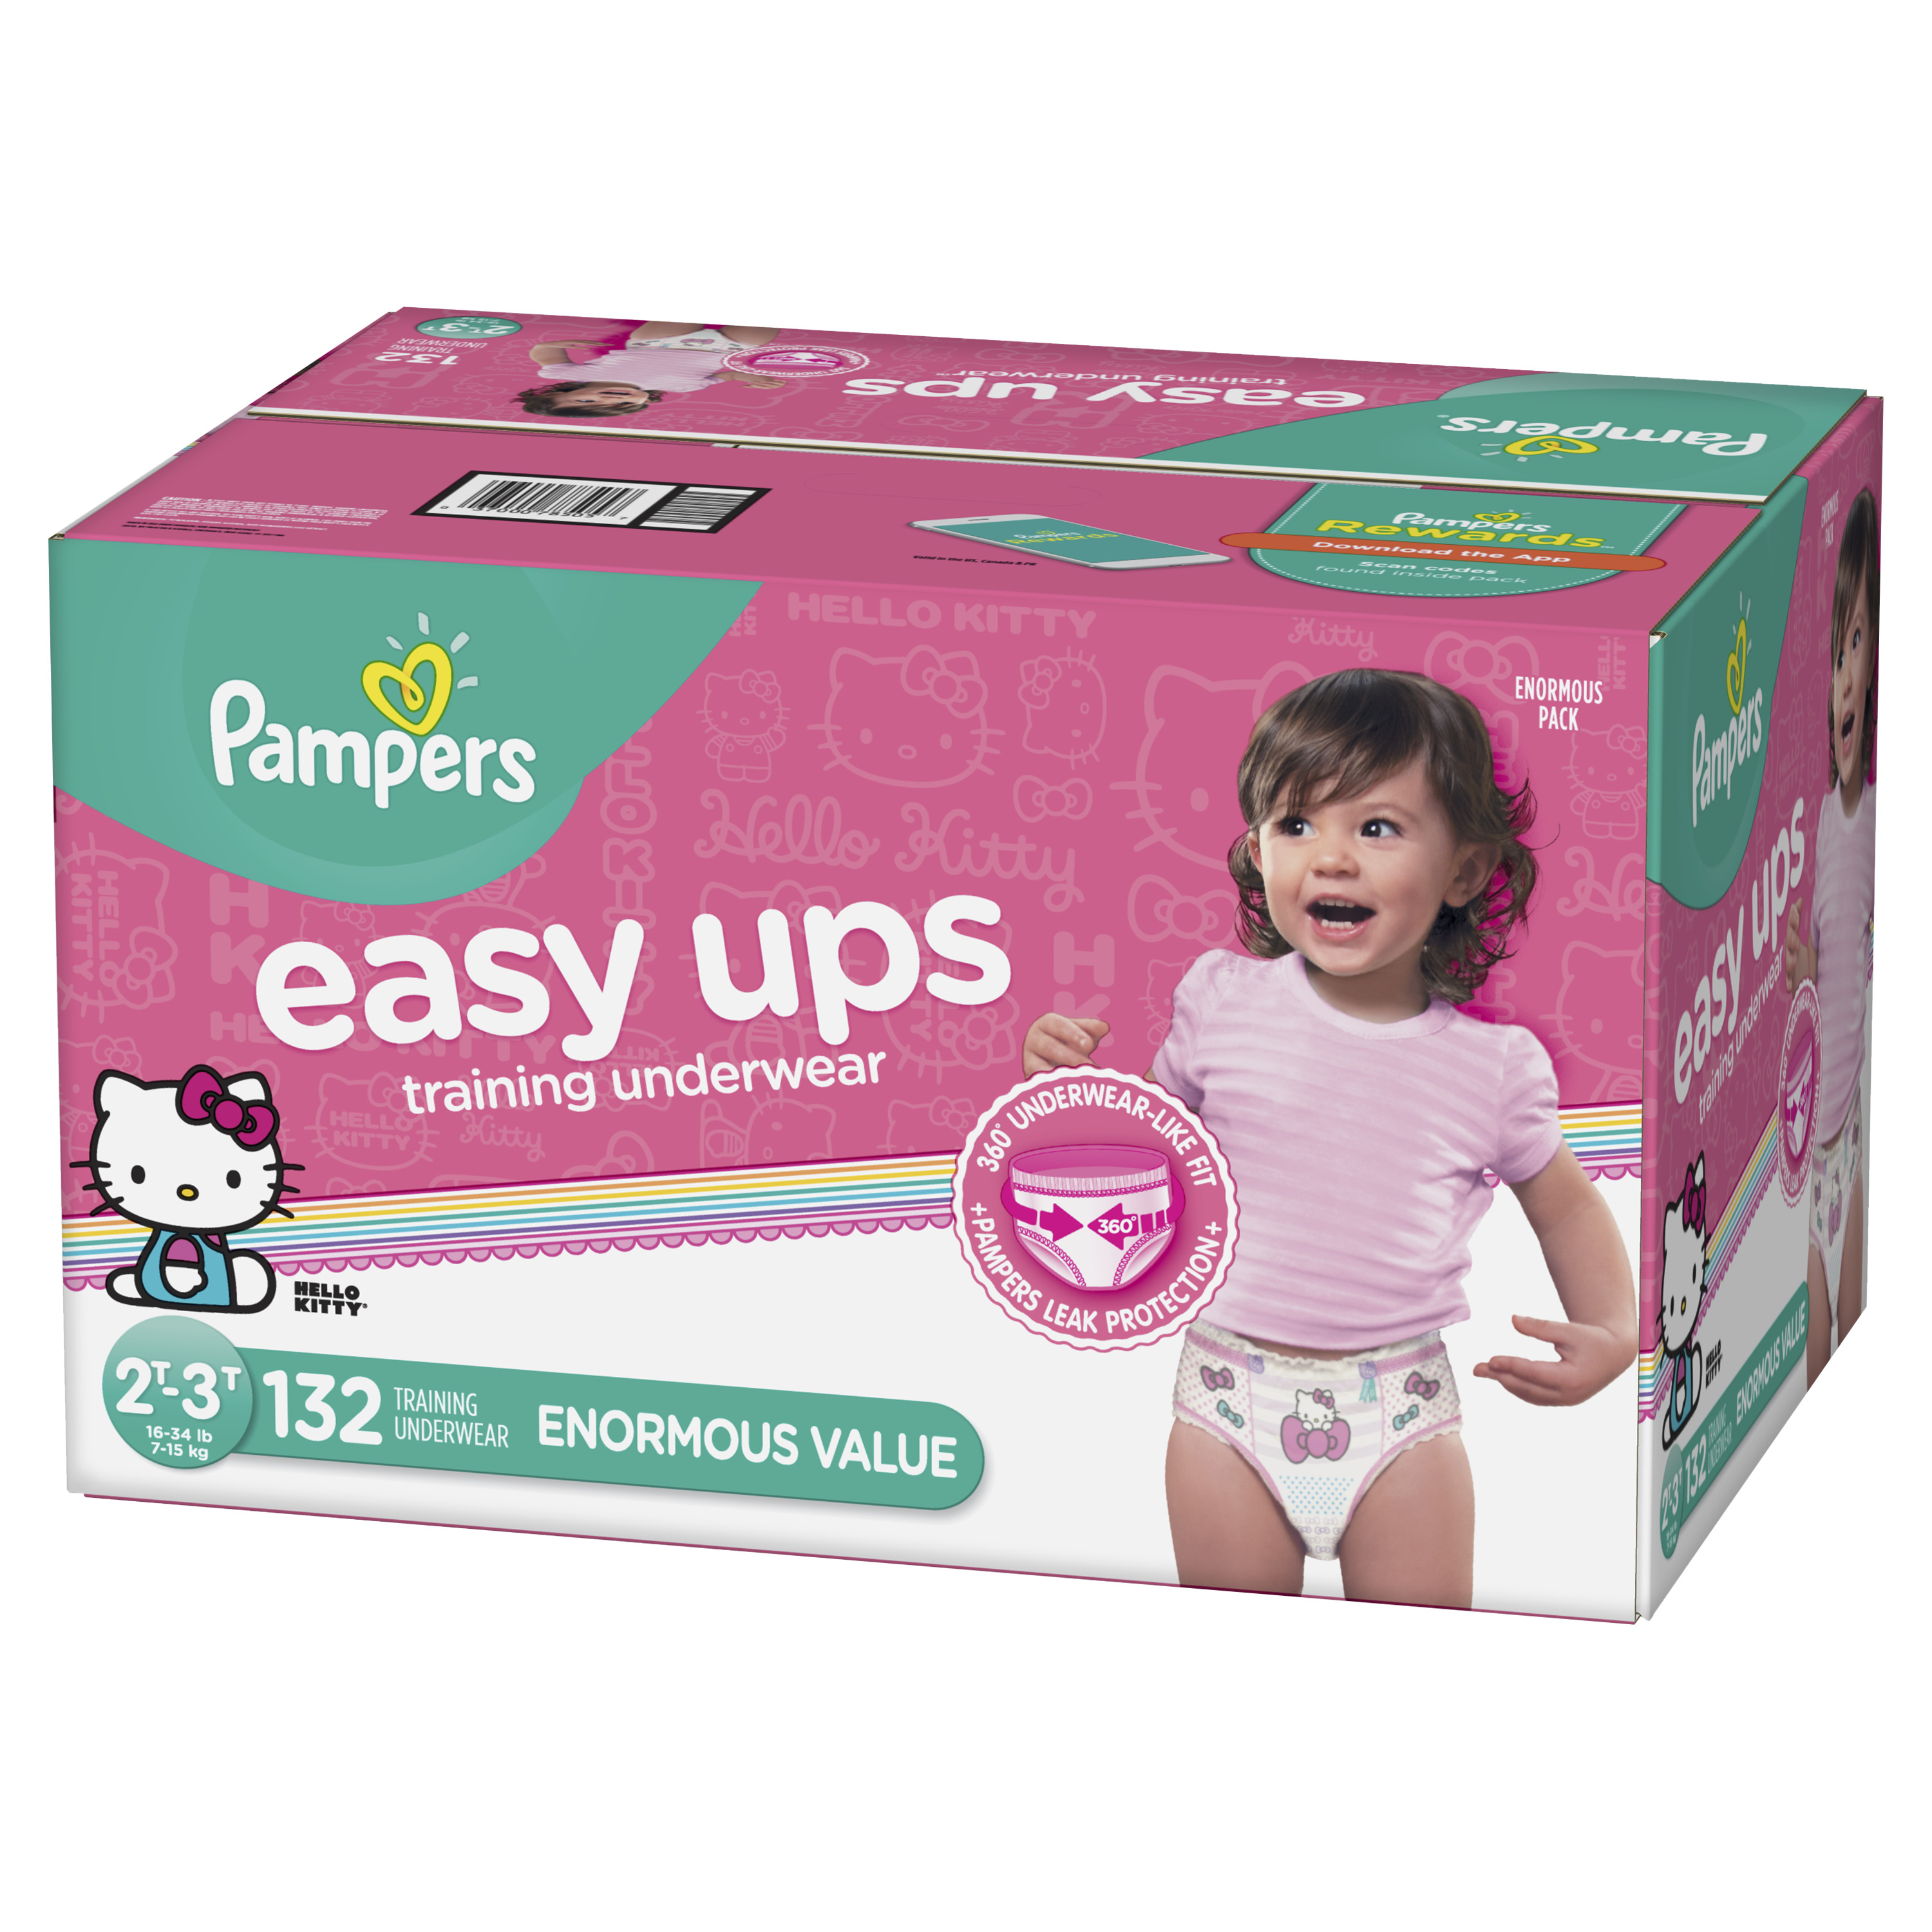 Pampers Easy Ups Training Underwear Girls Size 4 2T-3T 132 Count